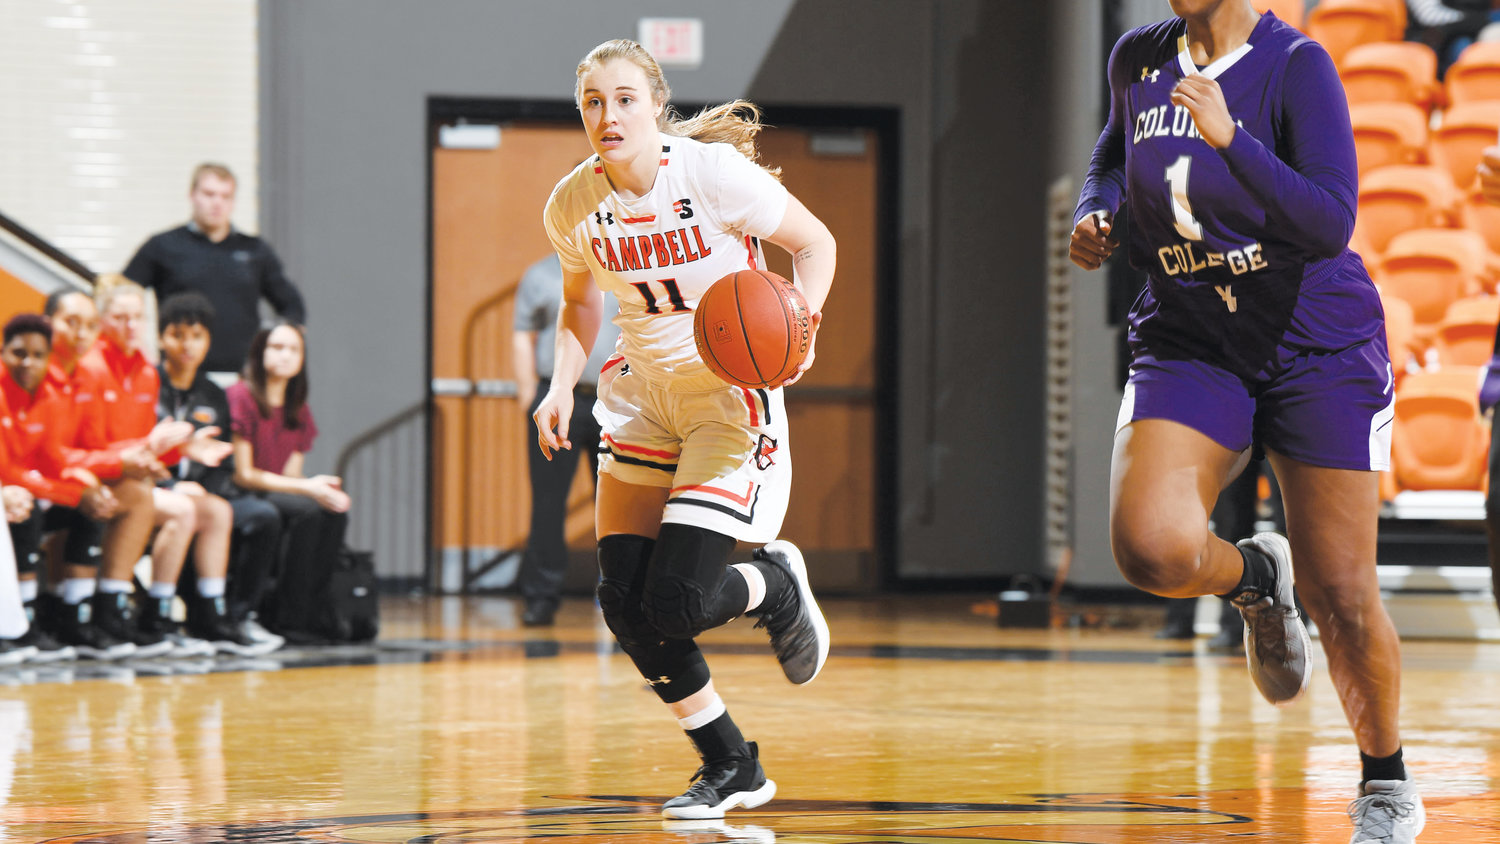 Campbell University's Shy Tuelle reached 17 points Sunday. Tuelle's total is a career best for the freshman that included a 5-for-9 effort beyond the arc.